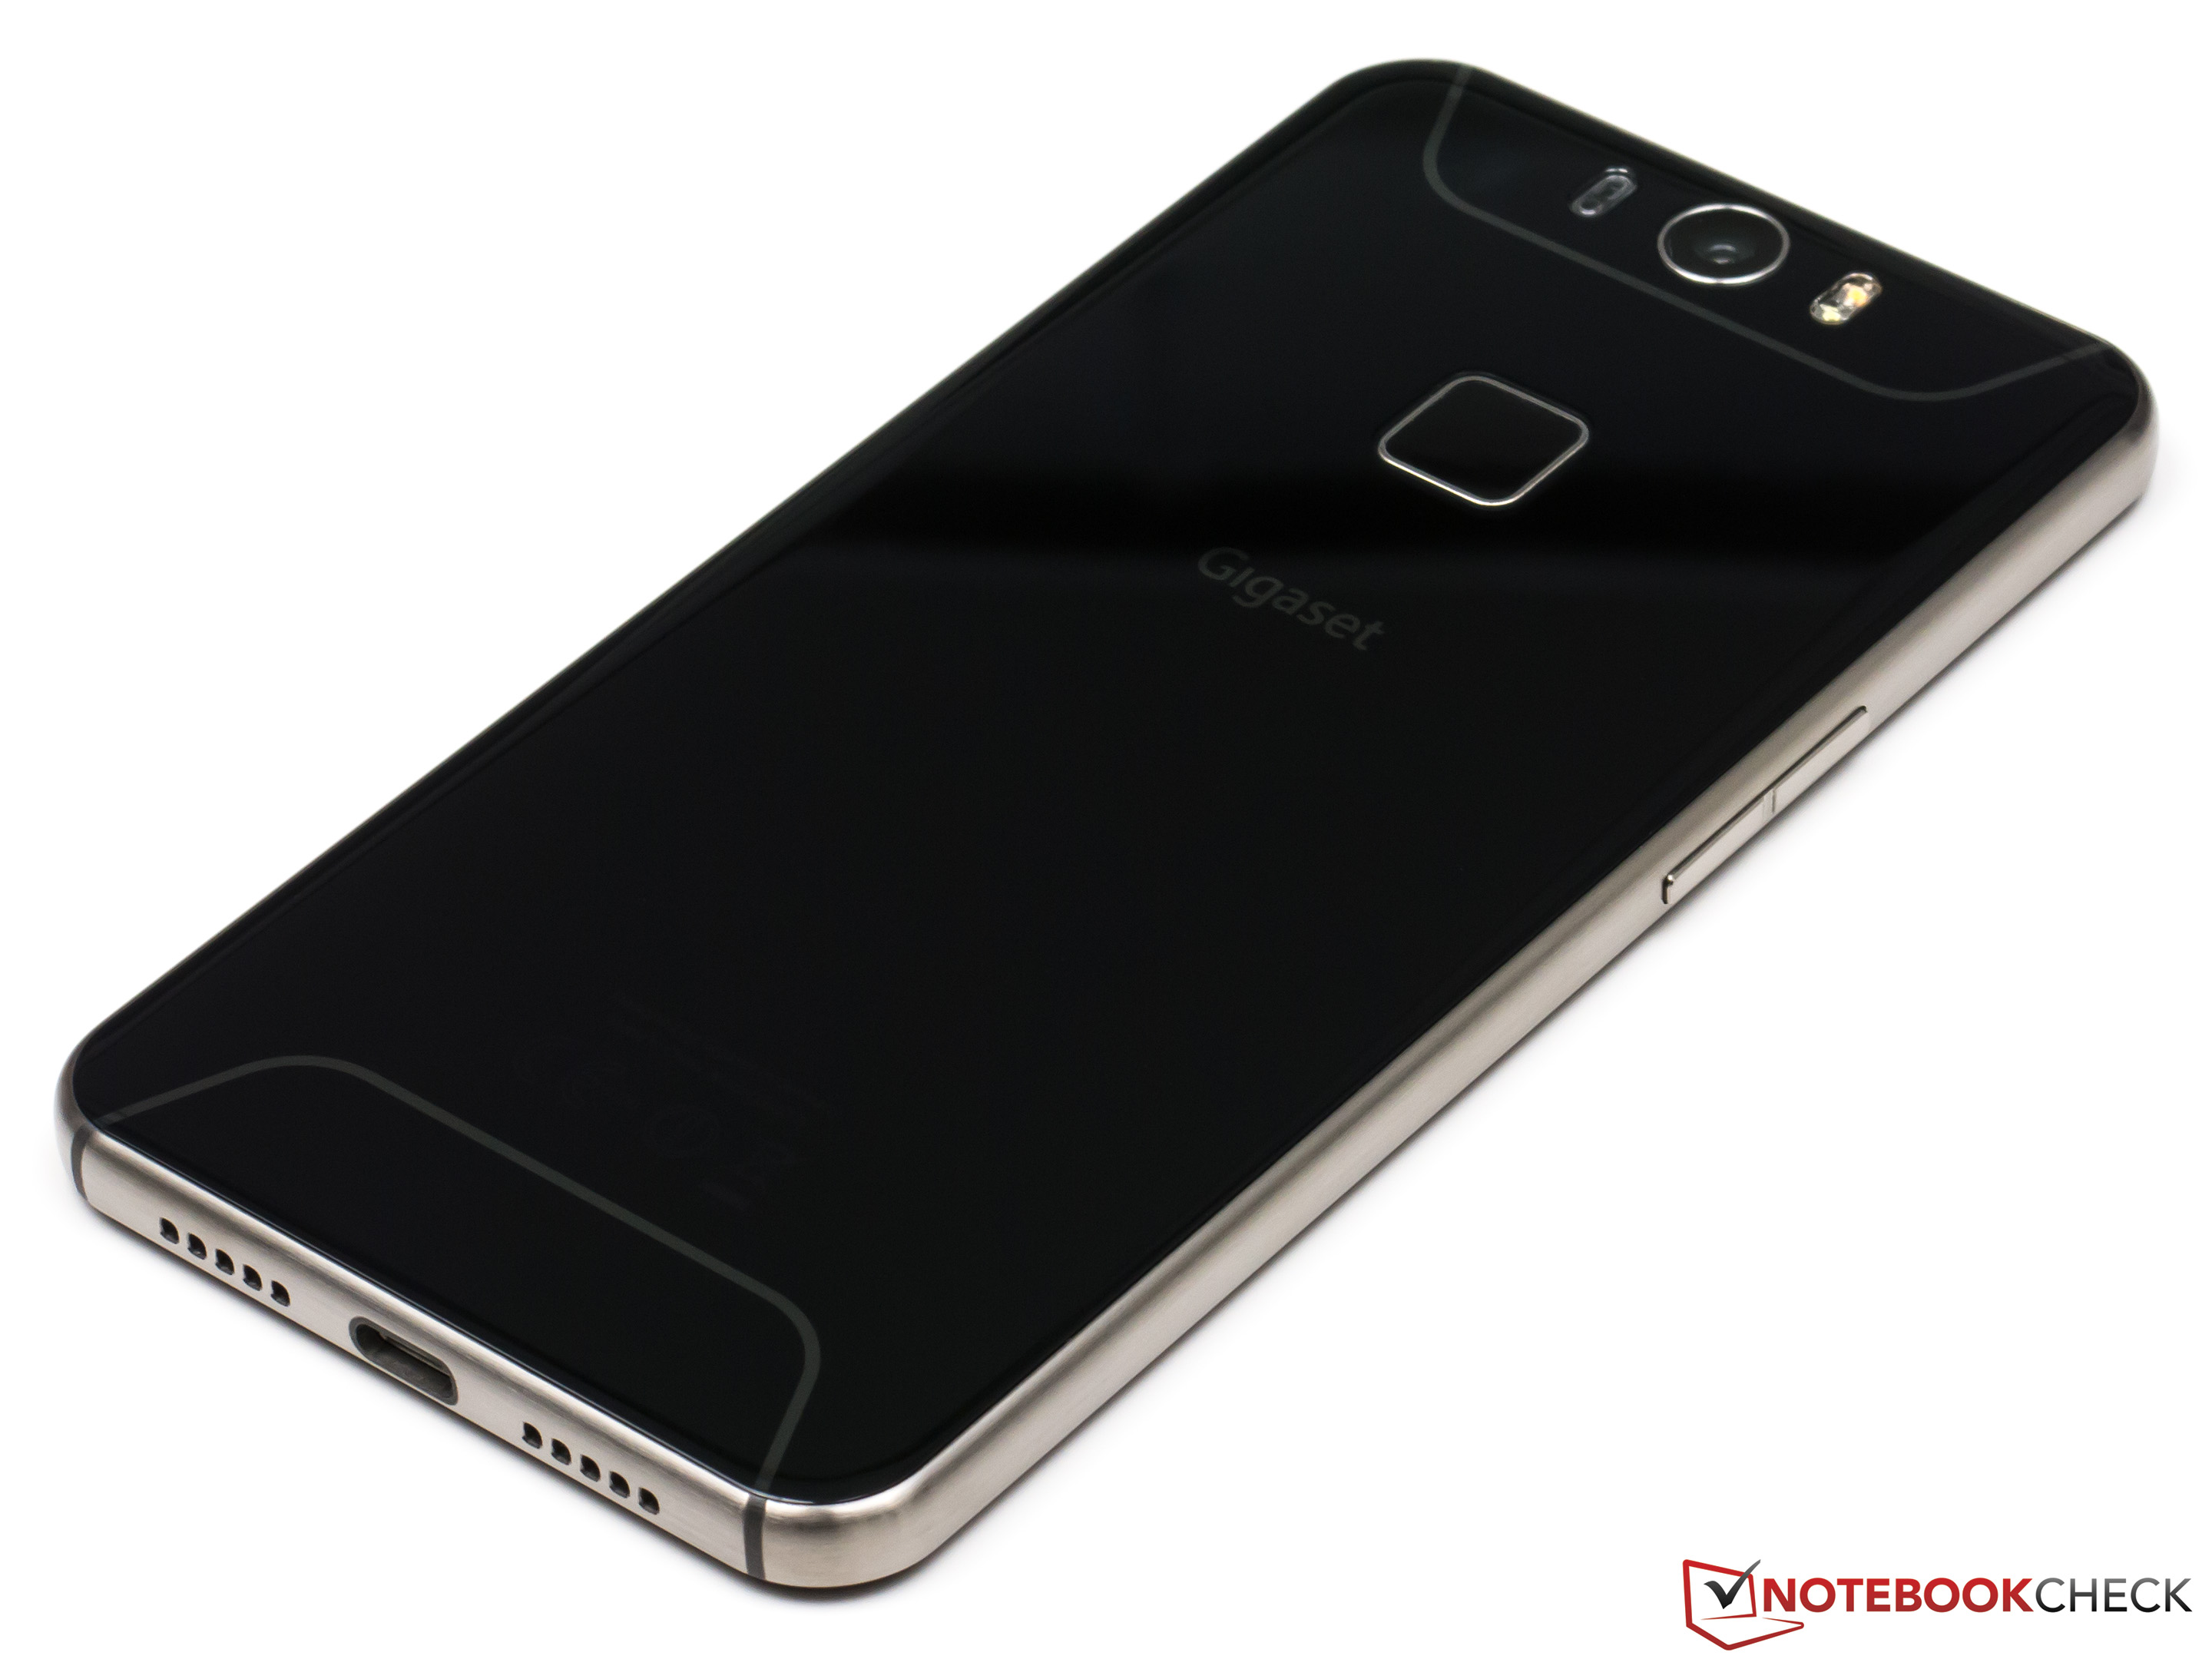 gigaset me pro smartphone review   notebookcheck   reviews